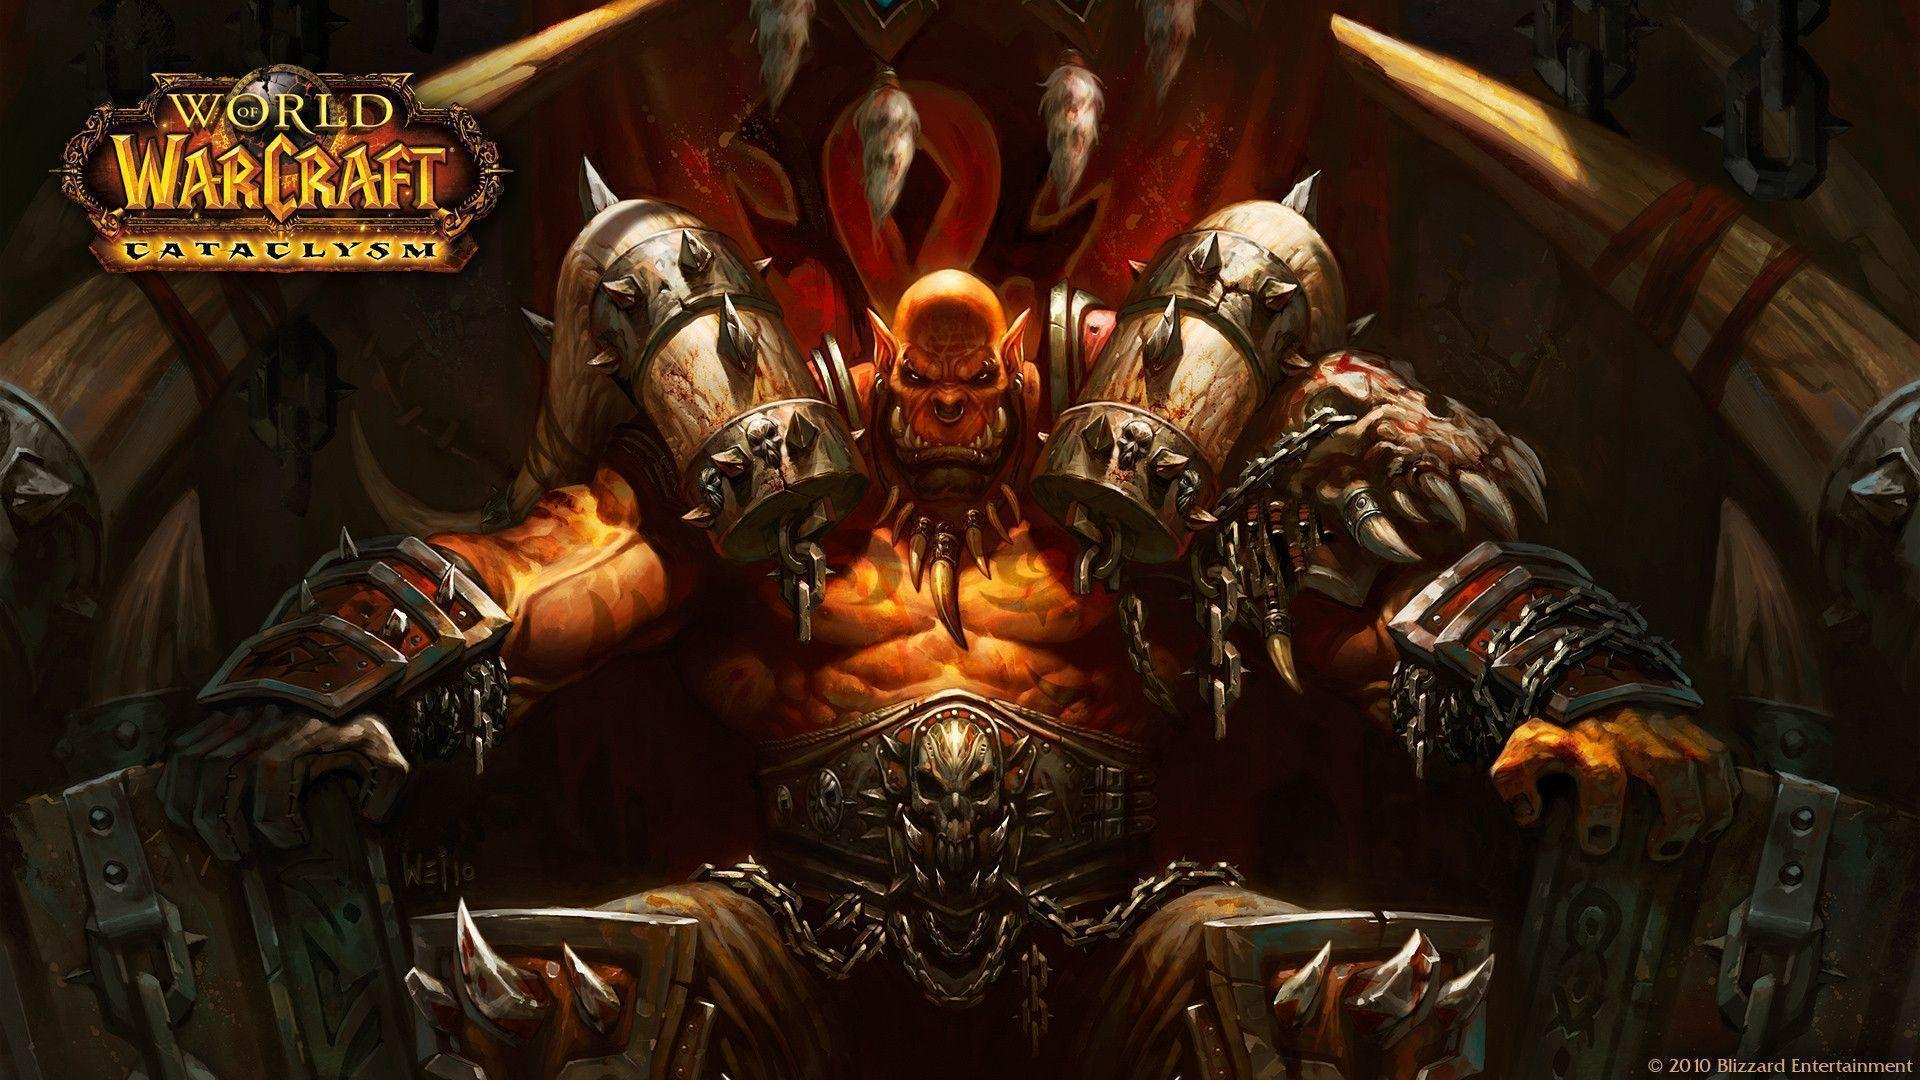 World of Warcraft Wallpaper 8 252366 Images HD Wallpapers| Wallfoy.com